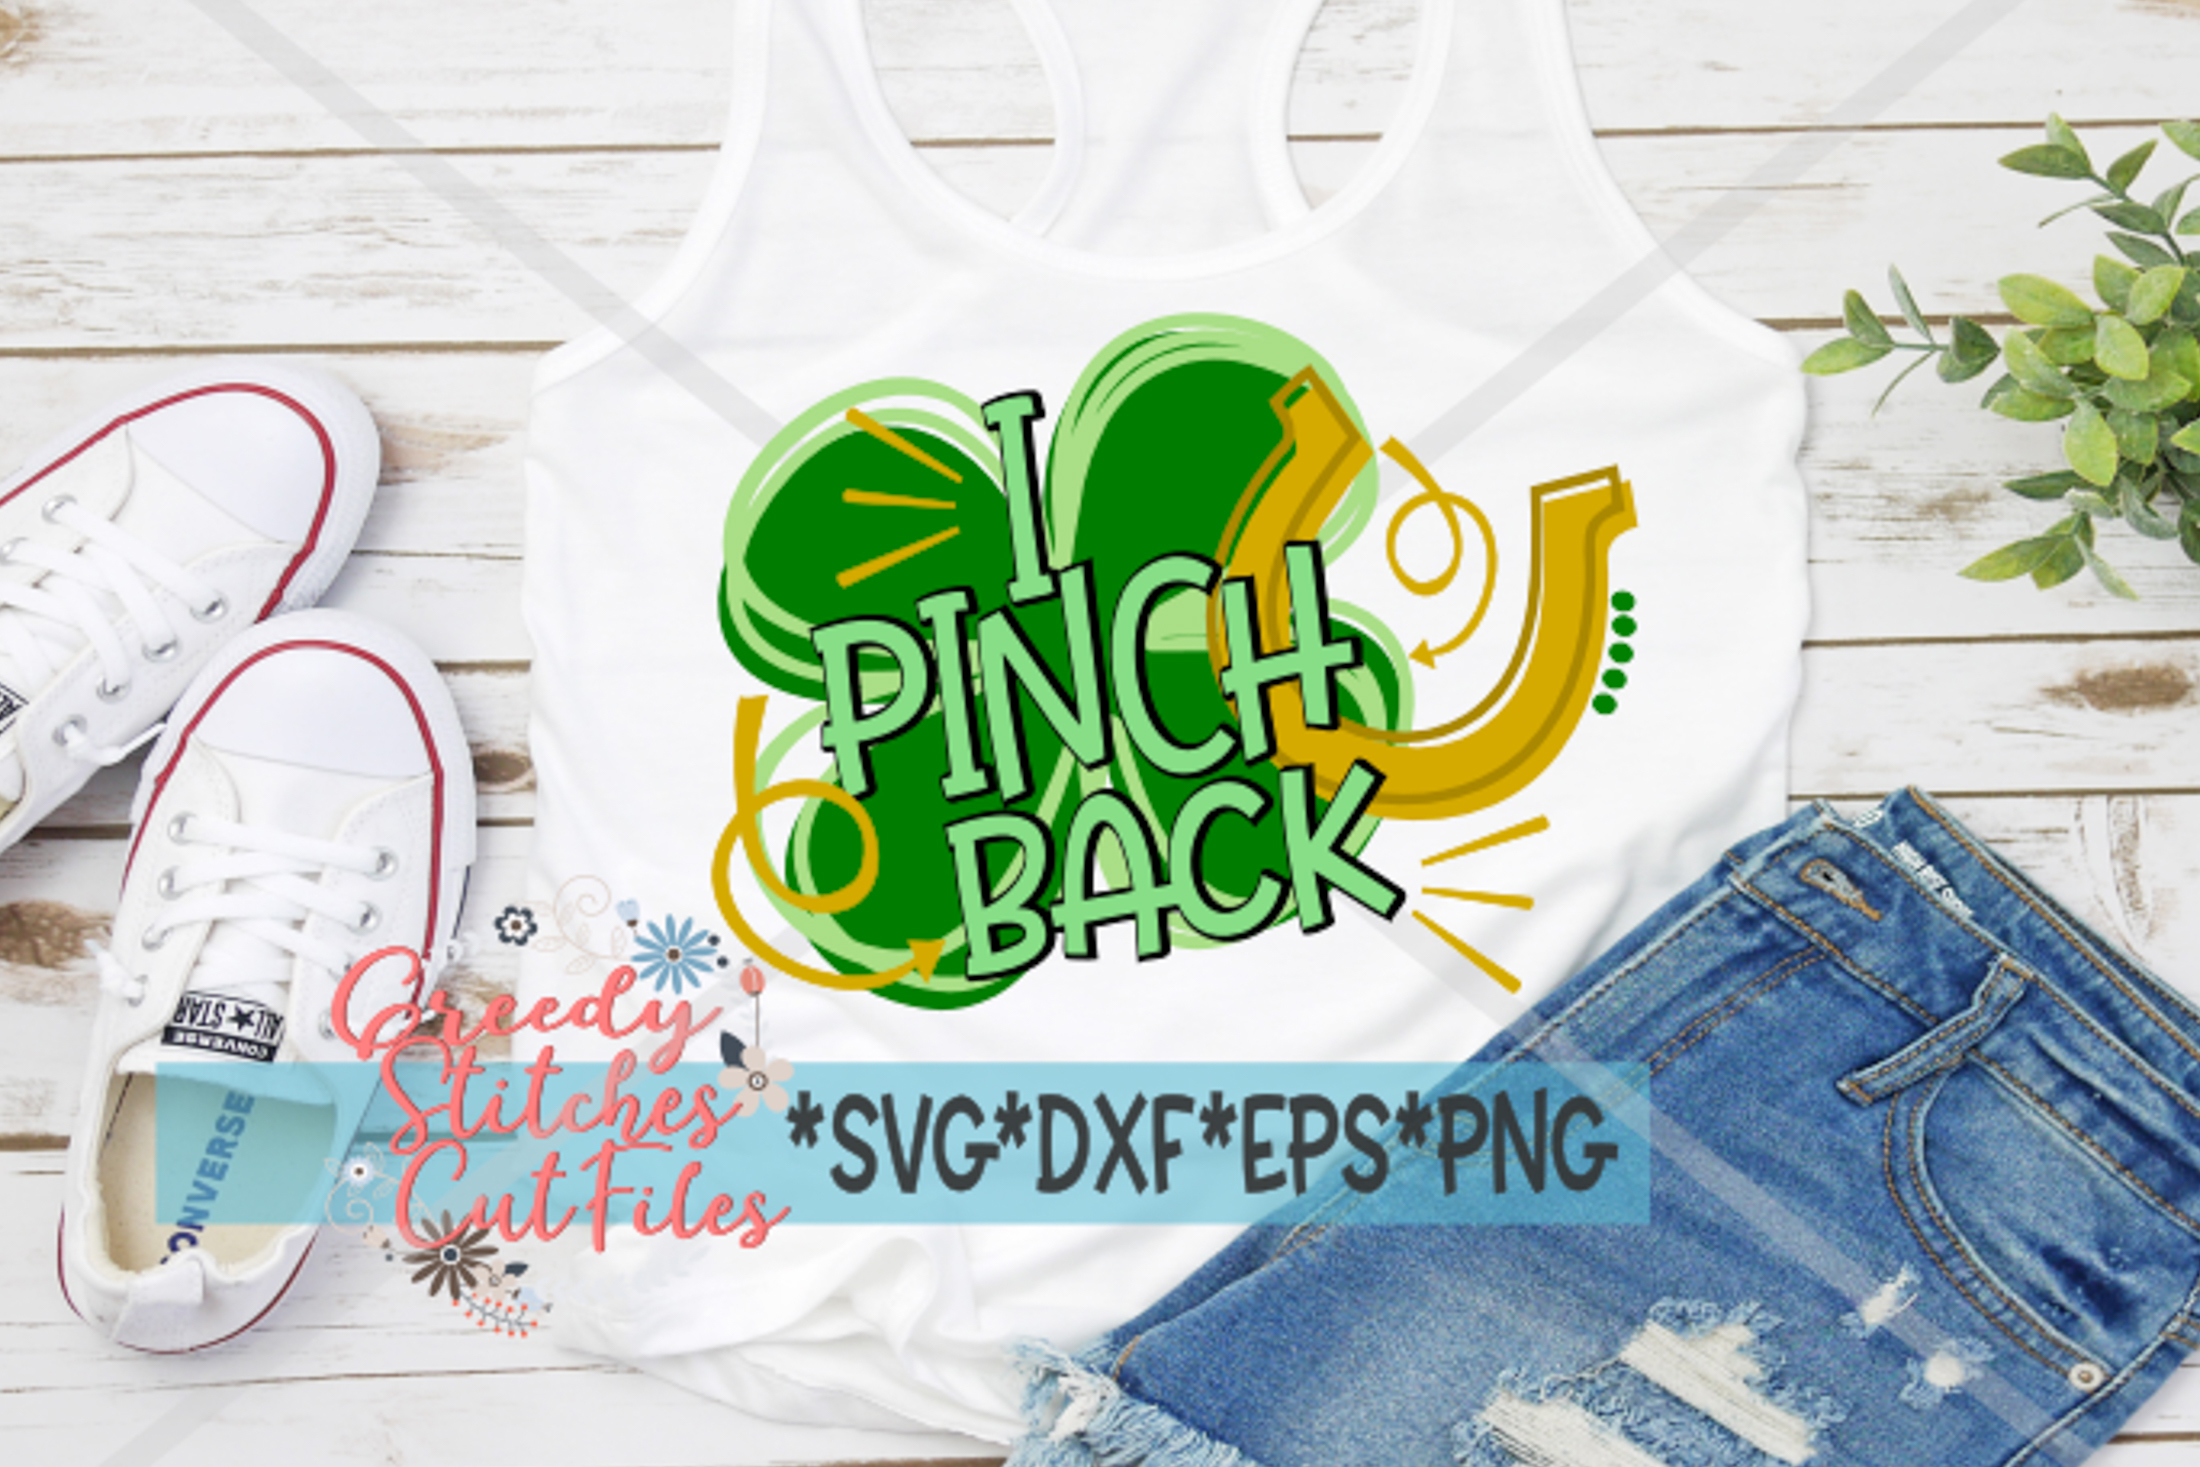 St. Patrick's Day | I Pinch Back SVG DXF EPS PNG example image 5